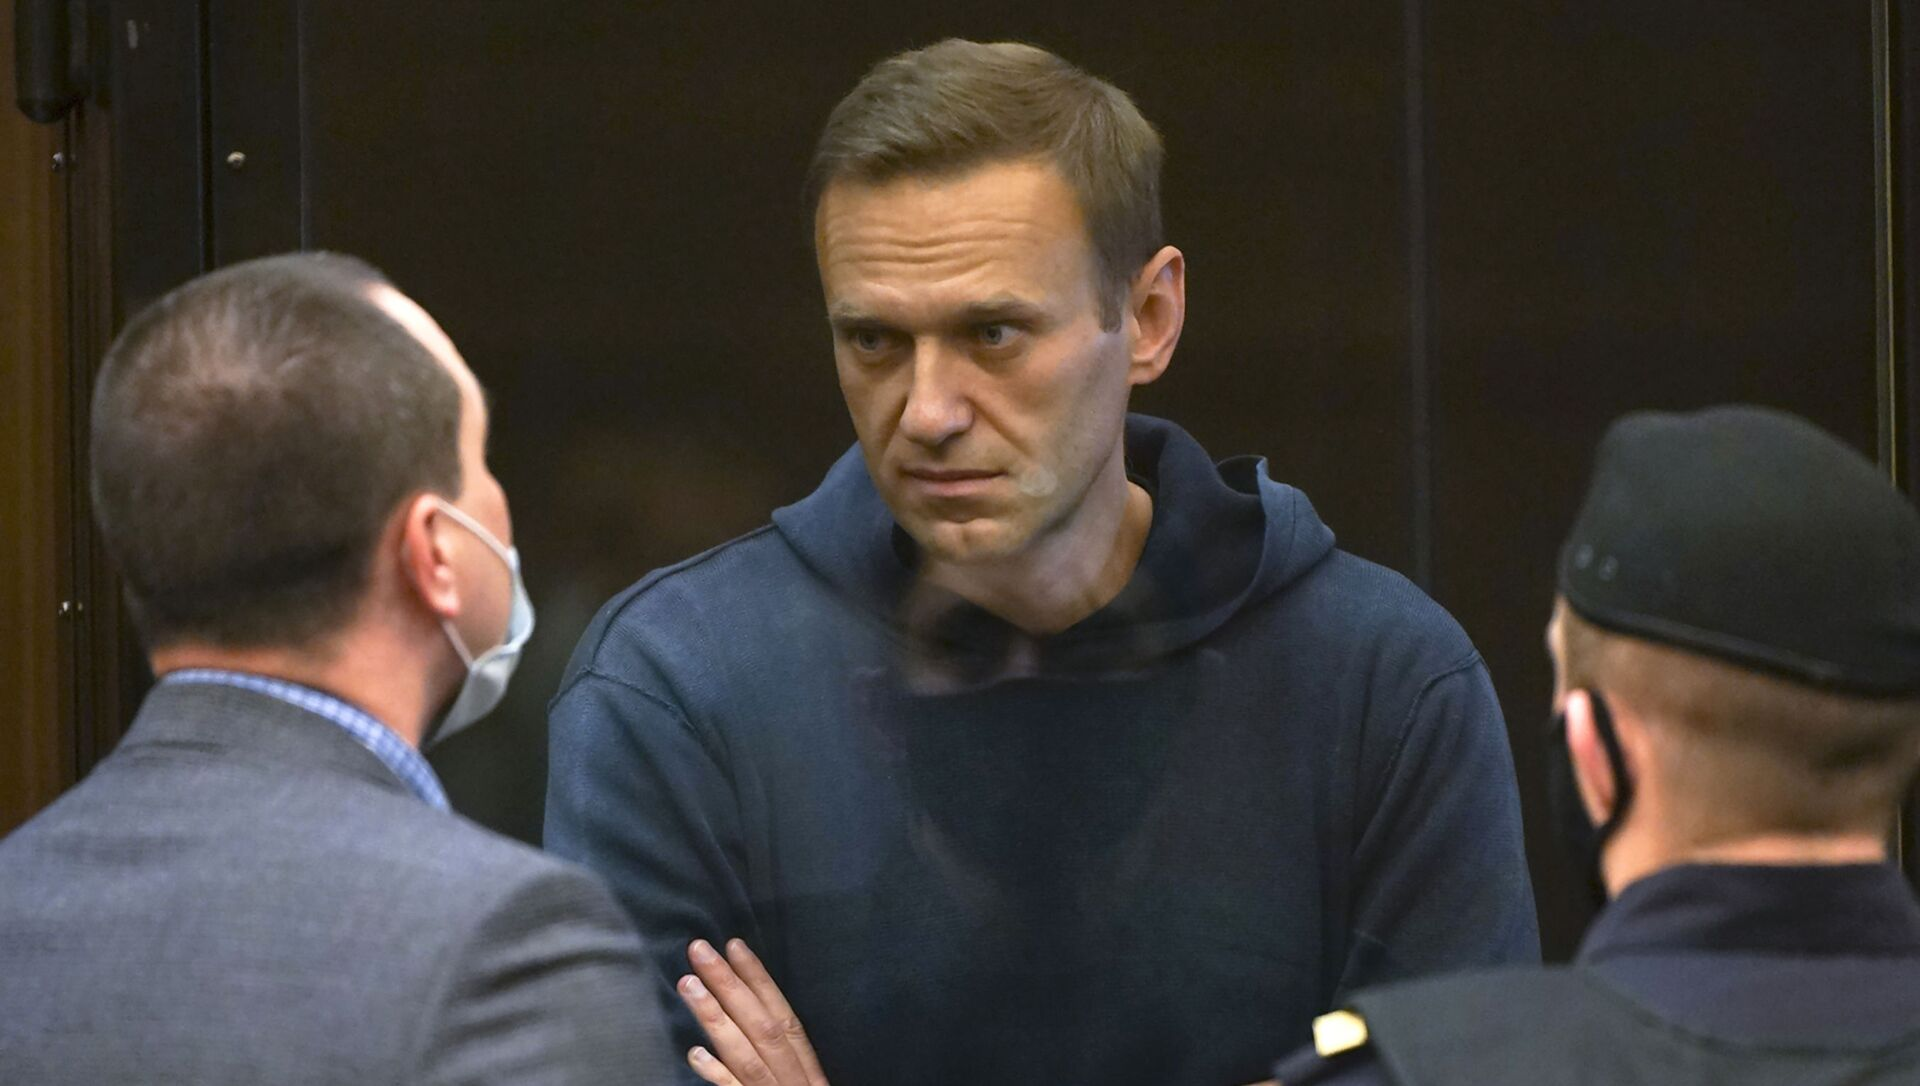 In this handout photo provided by Moscow City Court Russian opposition leader Alexei Navalny talks to one of his lawyers, left, while standing in the cage during a hearing to a motion from the Russian prison service to convert the suspended sentence of Navalny from the 2014 criminal conviction into a real prison term in the Moscow City Court in Moscow, Russia, Tuesday, Feb. 2, 2021. - Sputnik International, 1920, 02.02.2021